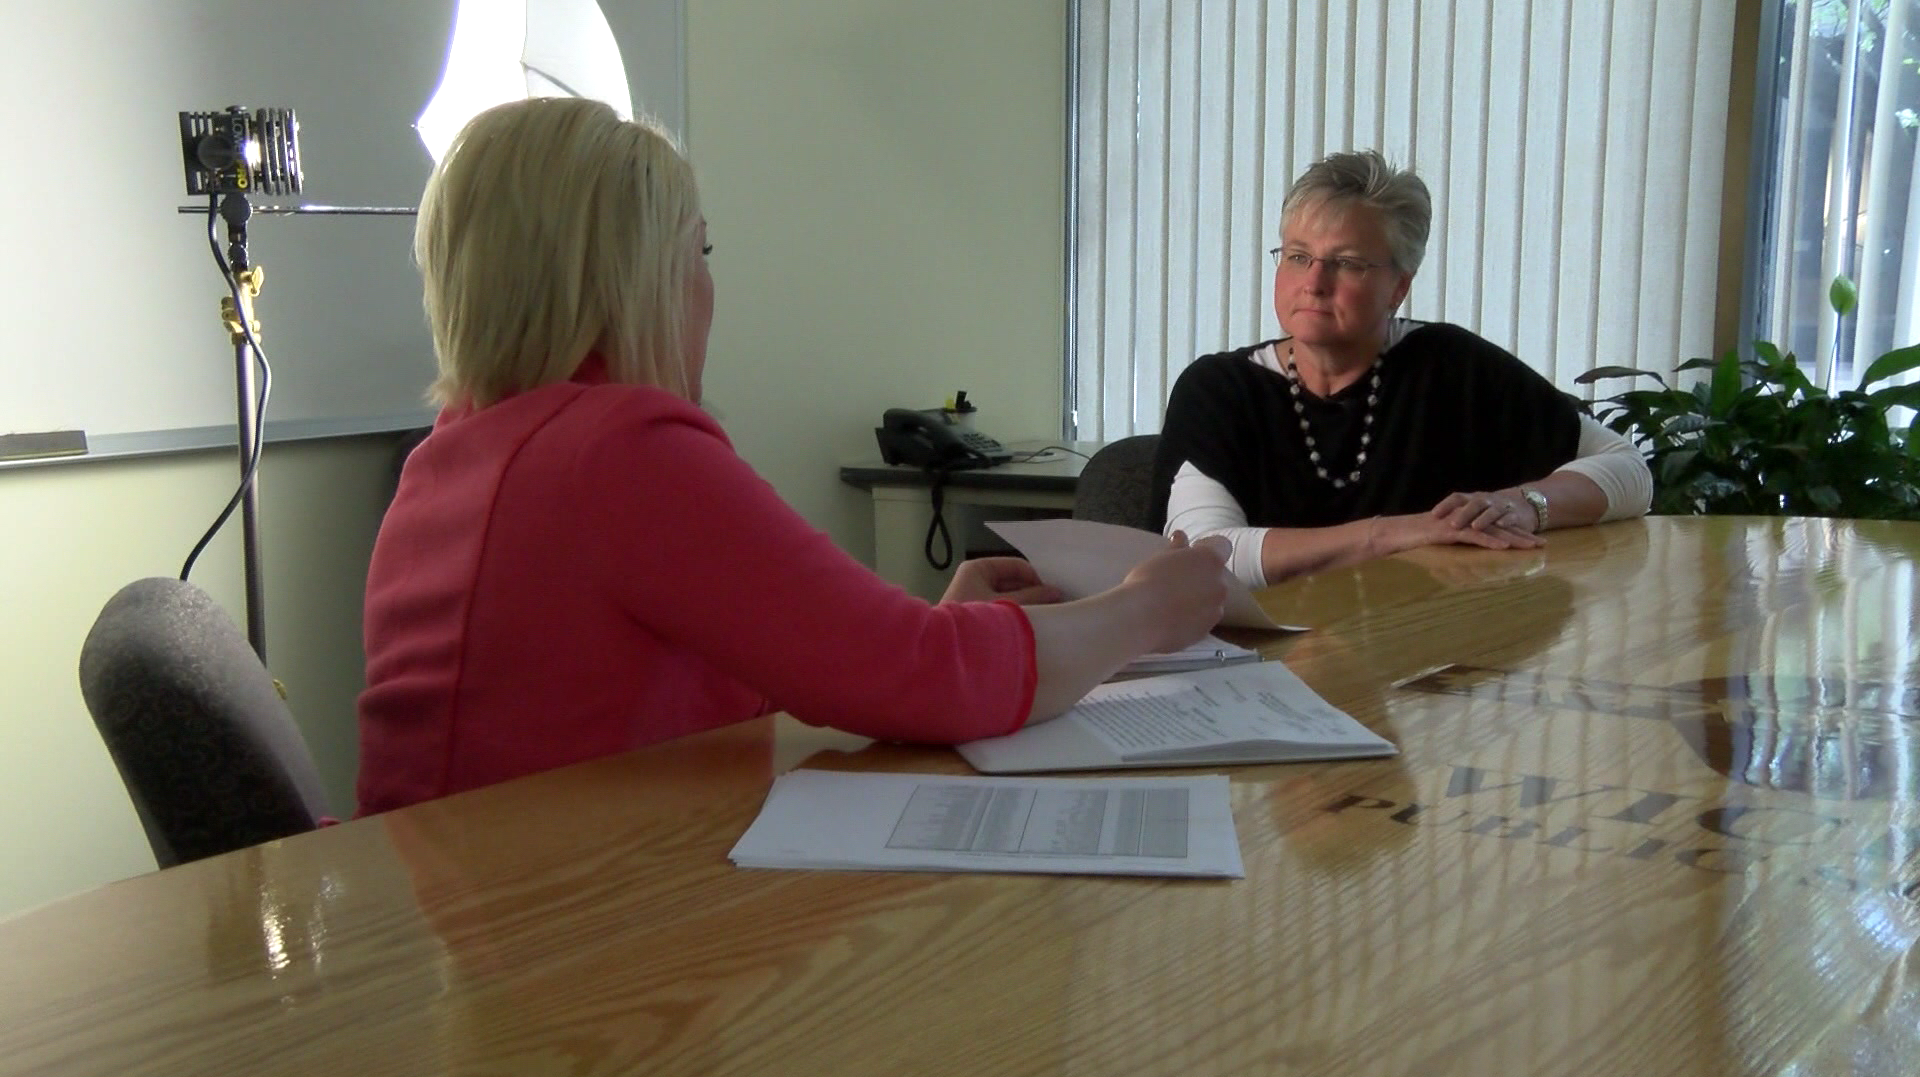 KSN's Brittany Glas sat down with Terri Moses, USD 259 Safety Services Department in April 2014, to discuss how the district goes above the state's minimal background check requirements.